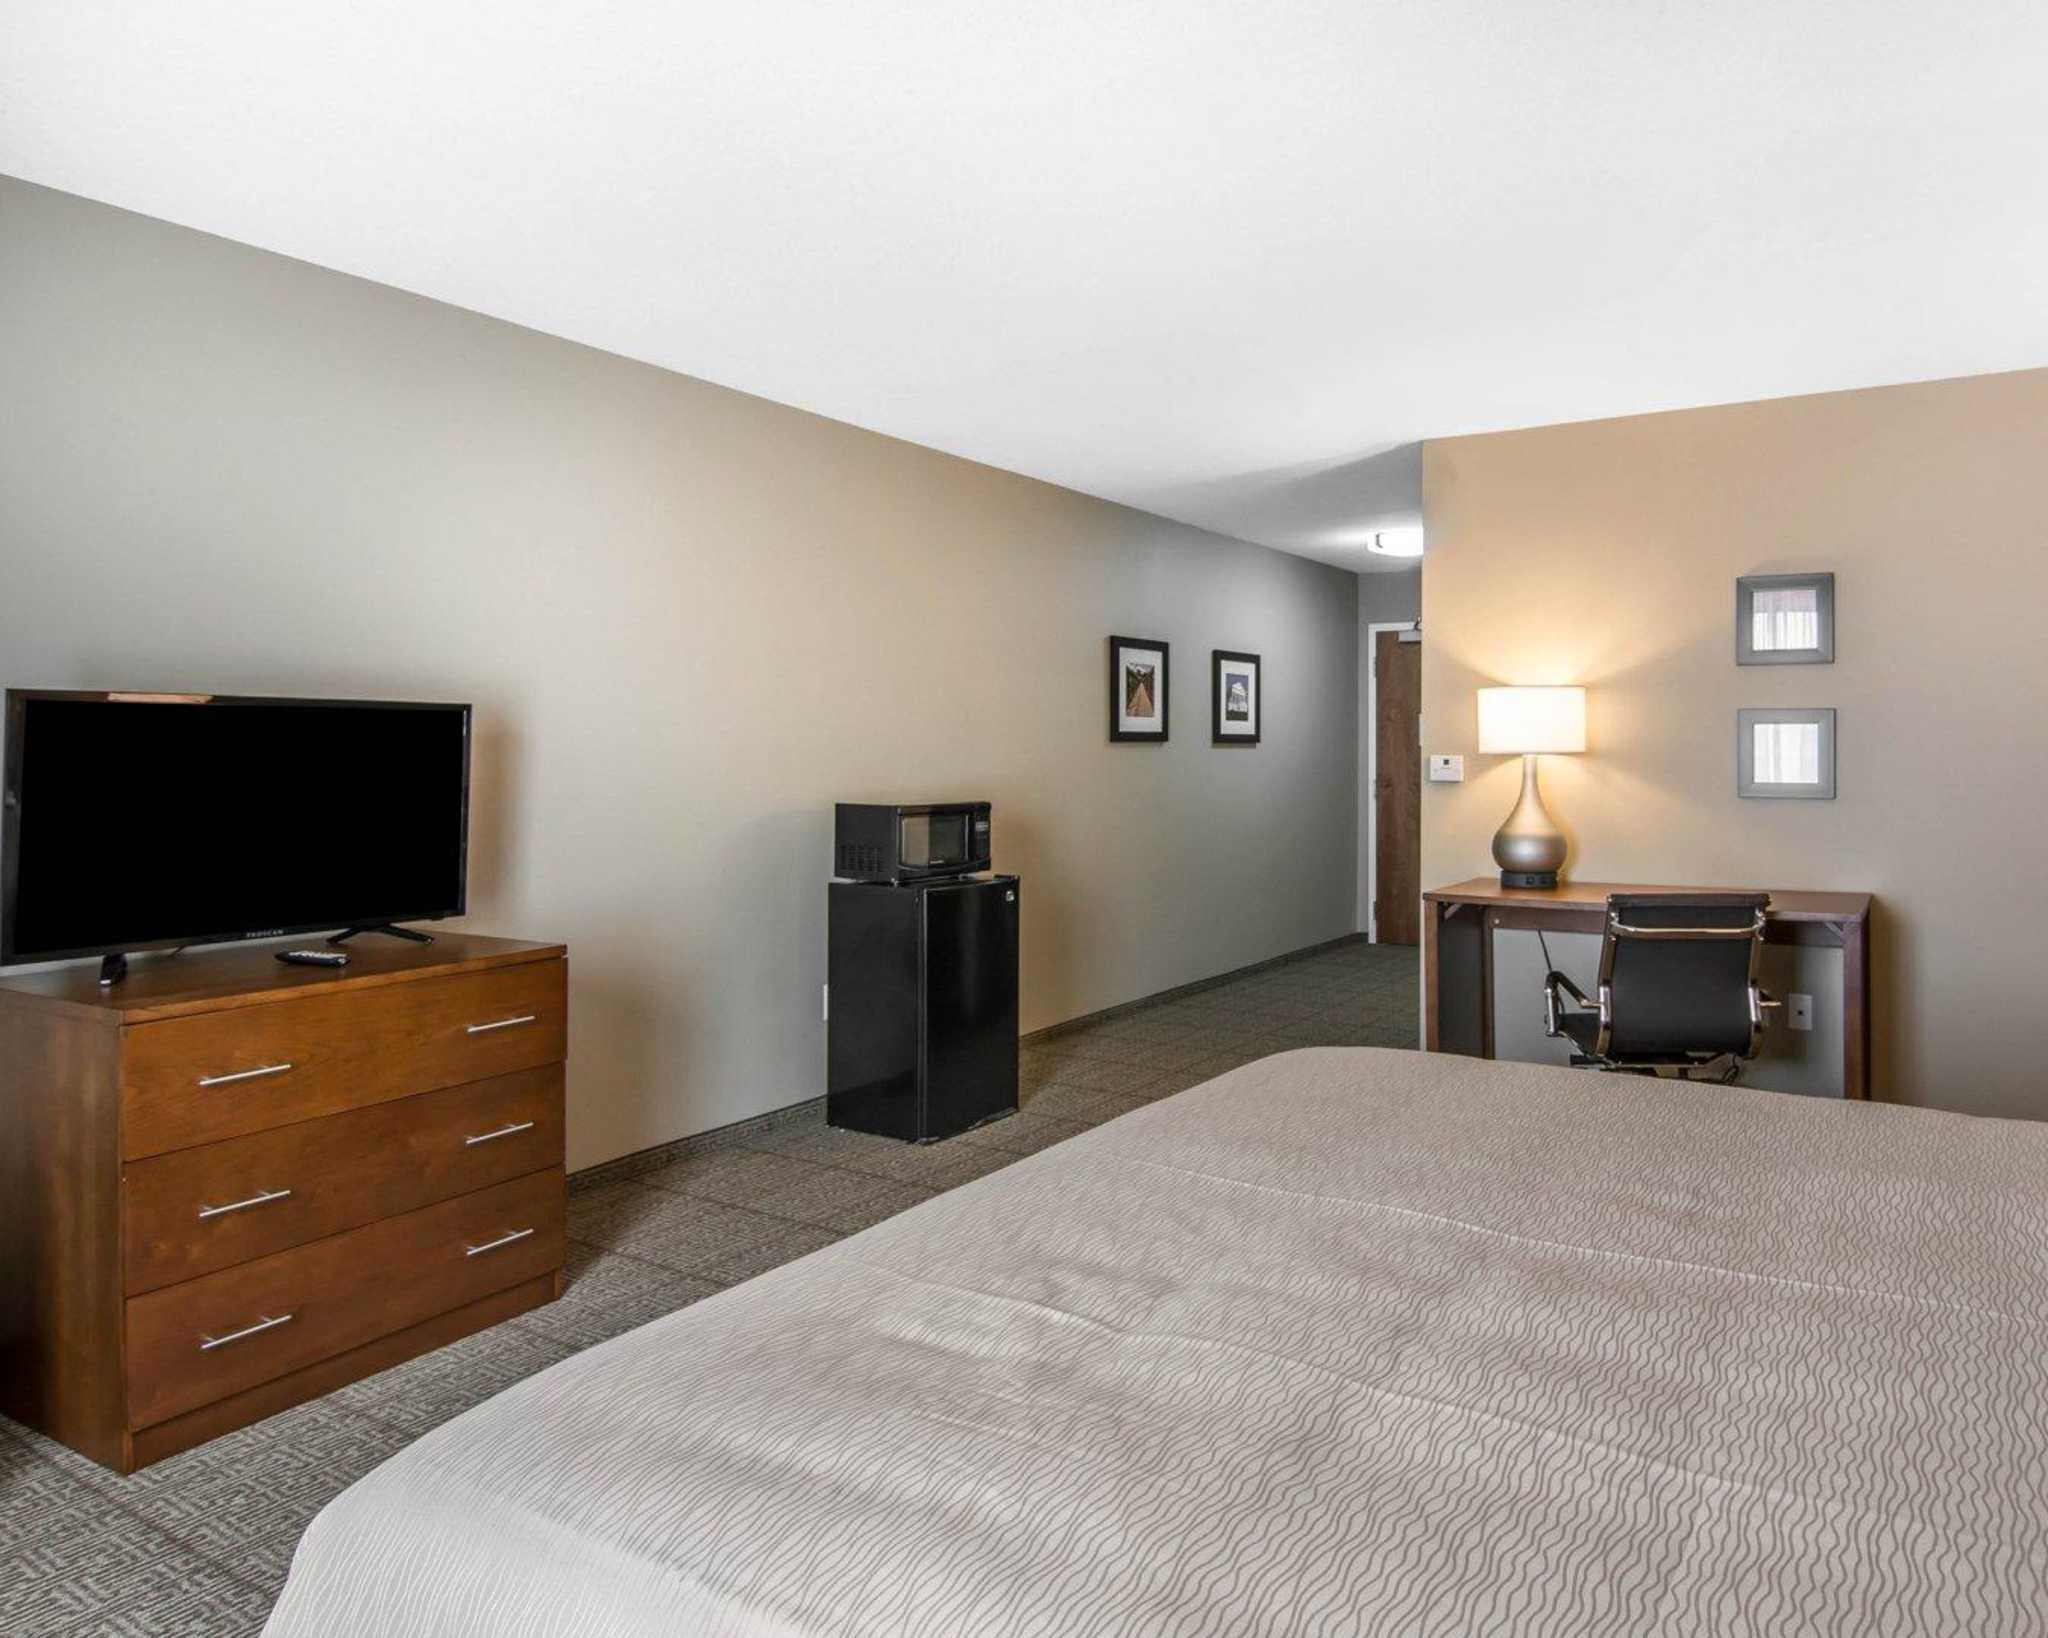 Comfort Inn South Chesterfield - Colonial Heights image 9